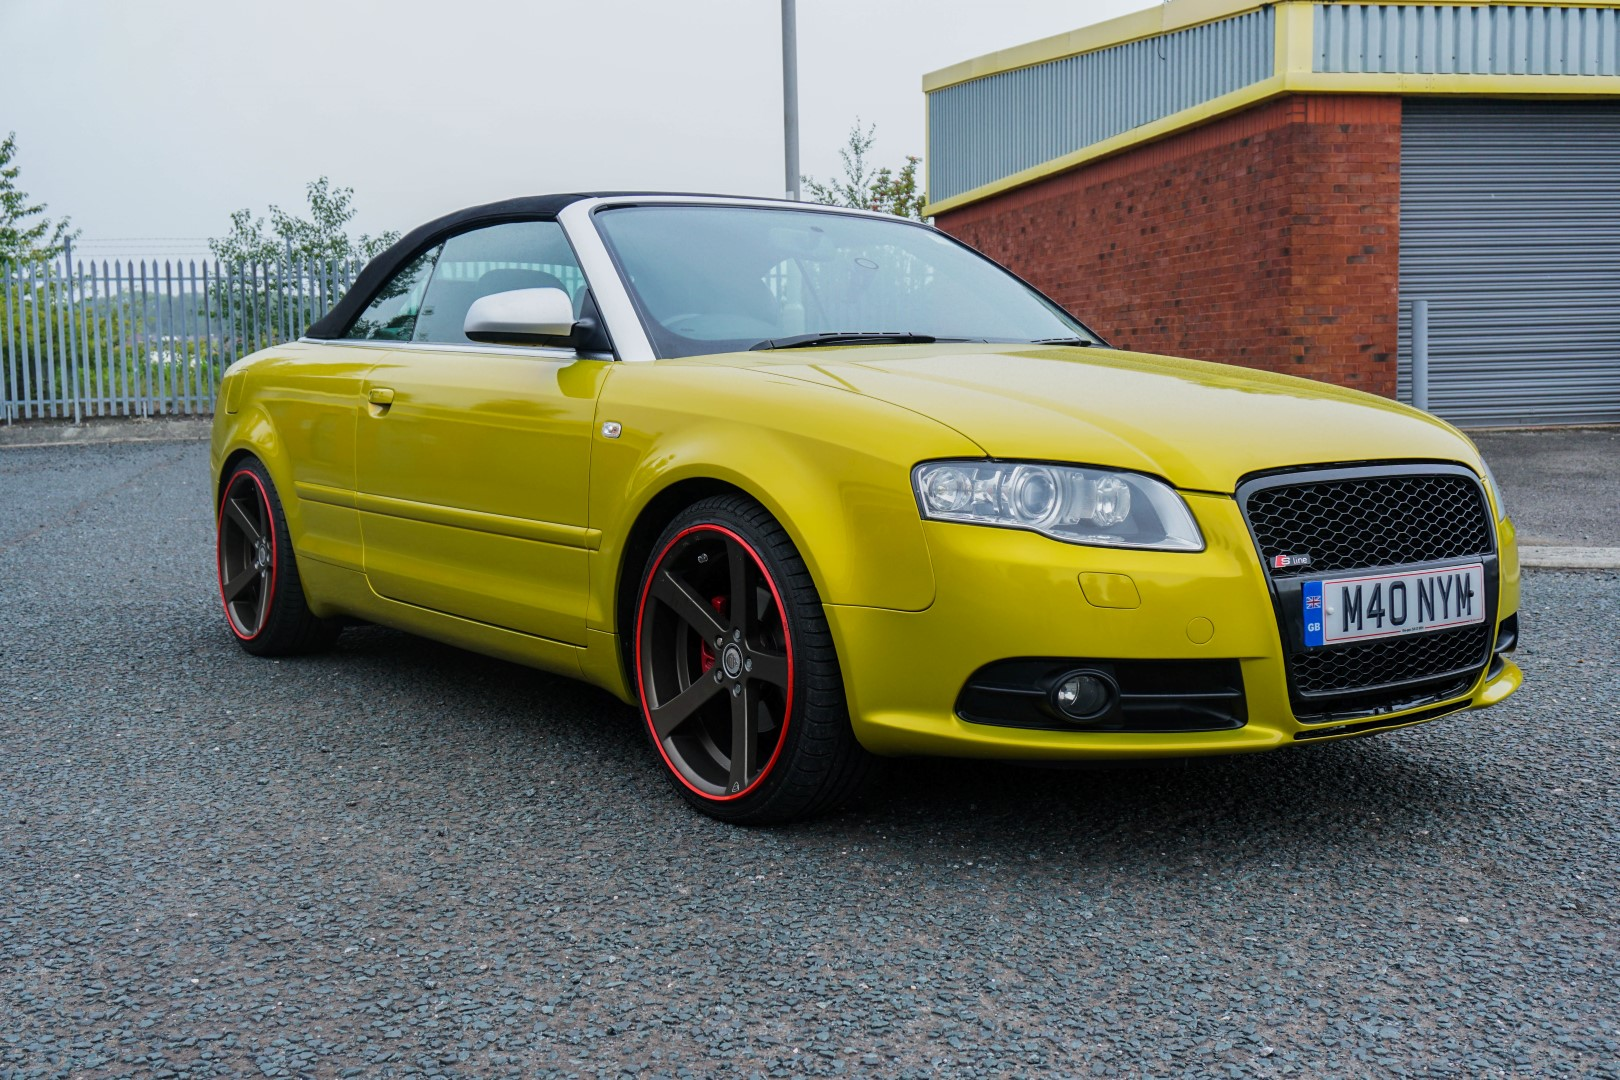 Audi A4 Convertible Full Wrap From Black To 3m Lemon Sting